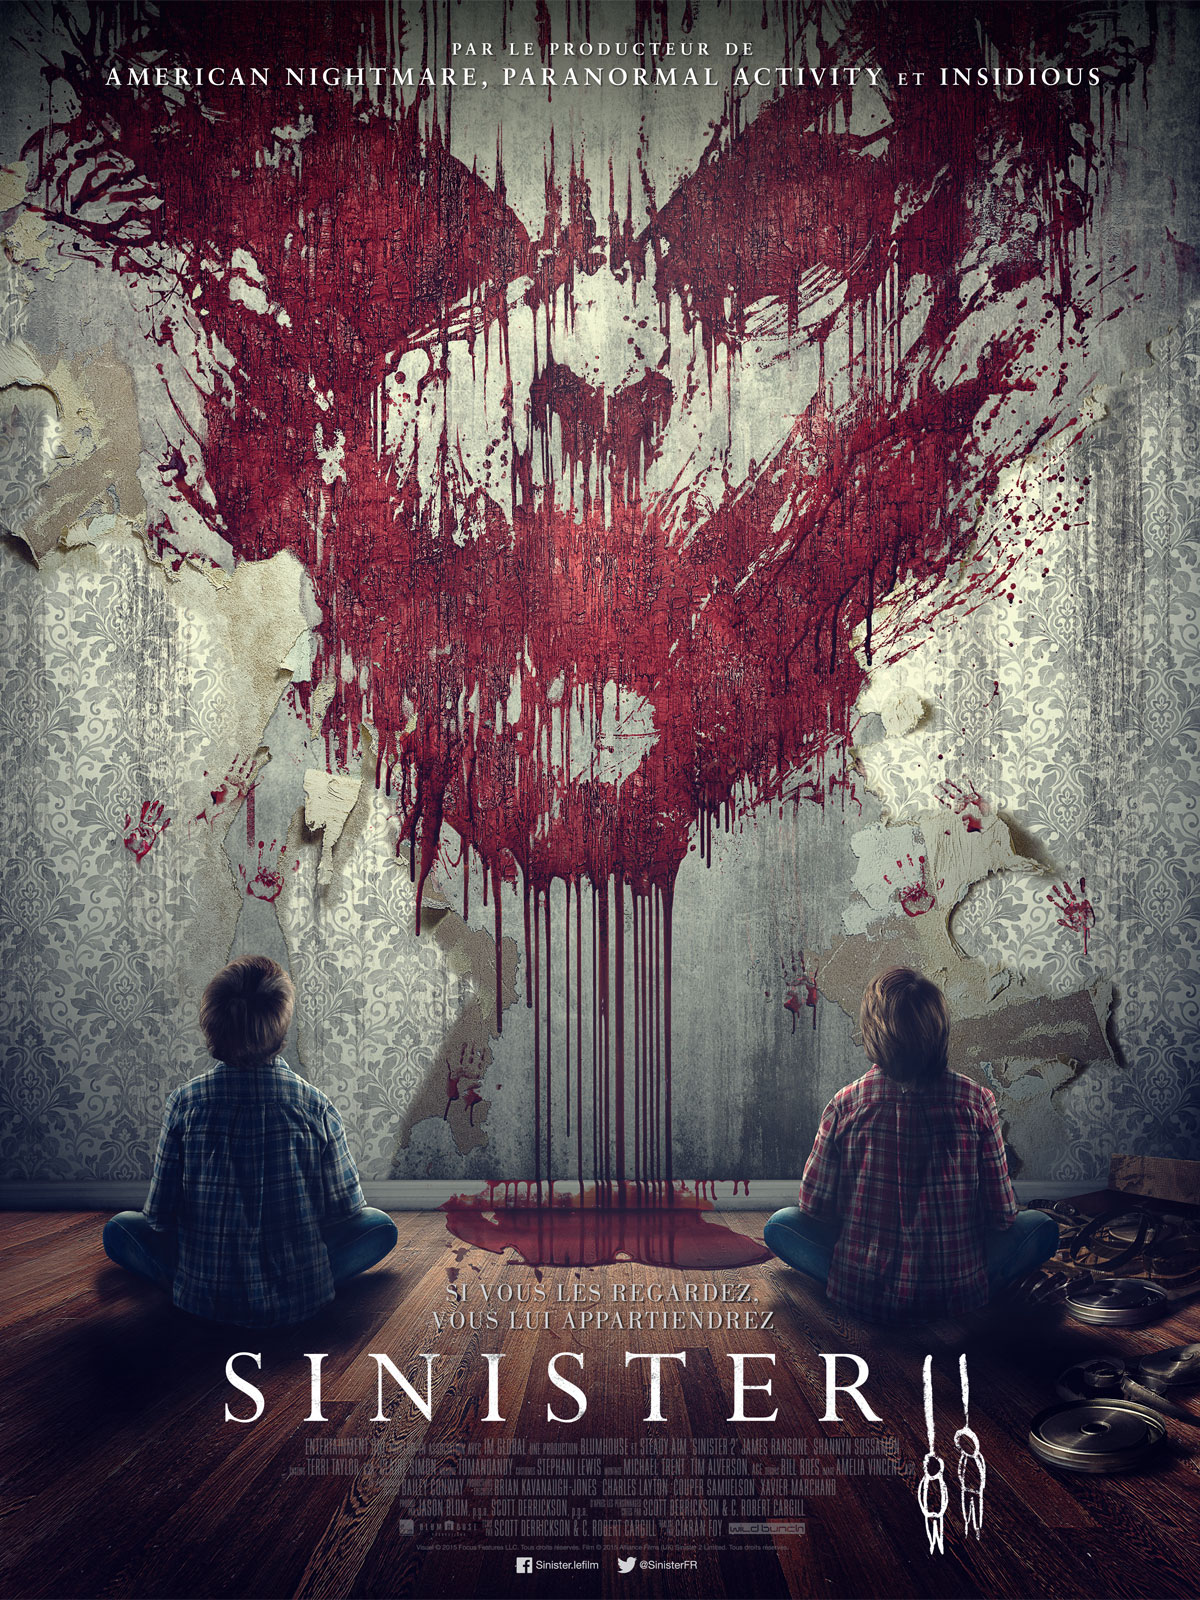 Télécharger Sinister 2 DVDRIP TUREFRENCH Uploaded